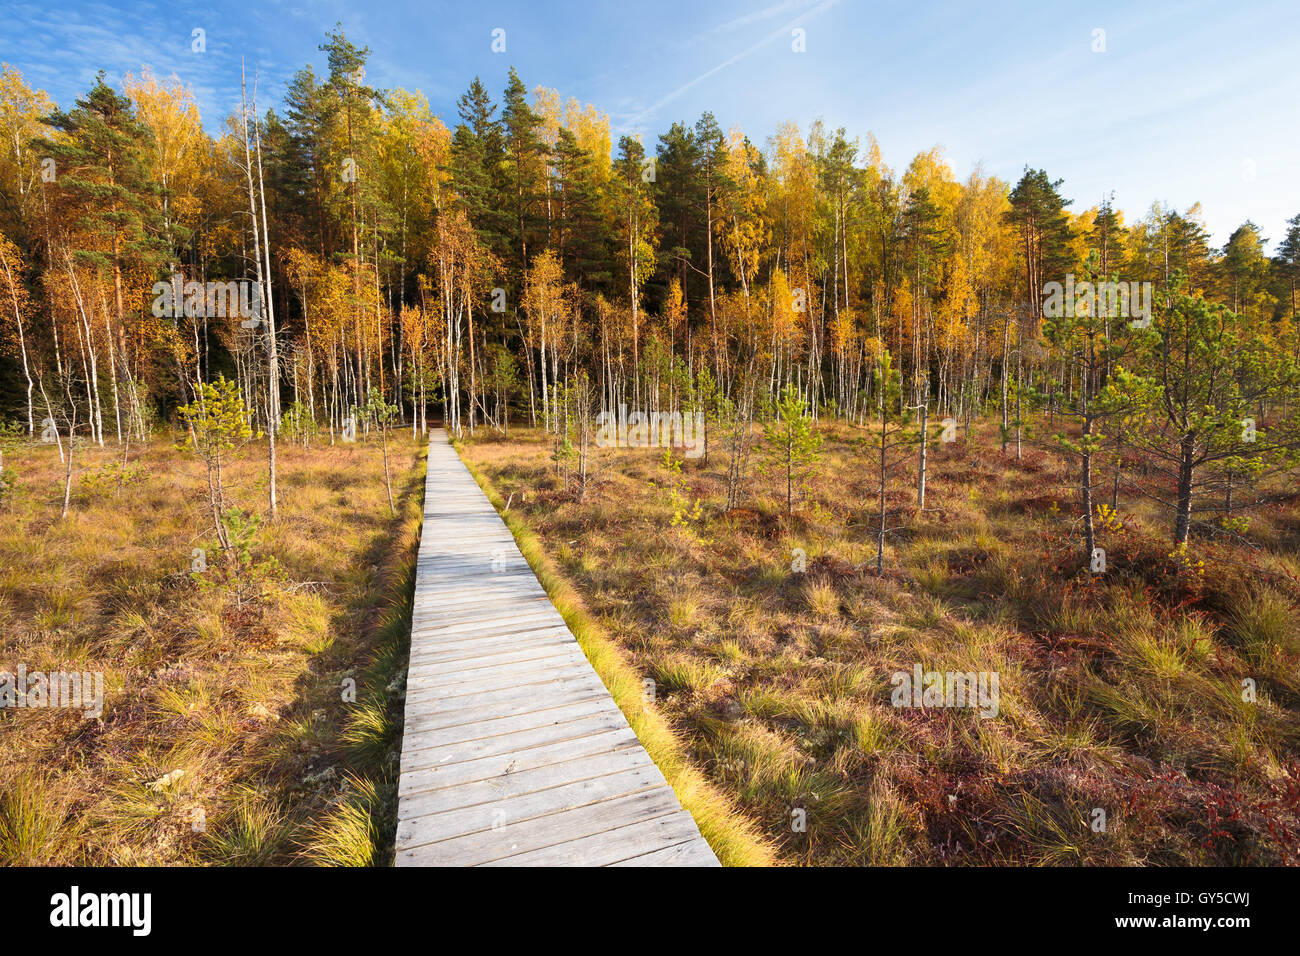 Wooden Path Way Pathway From Marsh Swamp To Forest. Autumn Nature Forest Landscape. Wooden Board Boarding On Ground Stock Photo